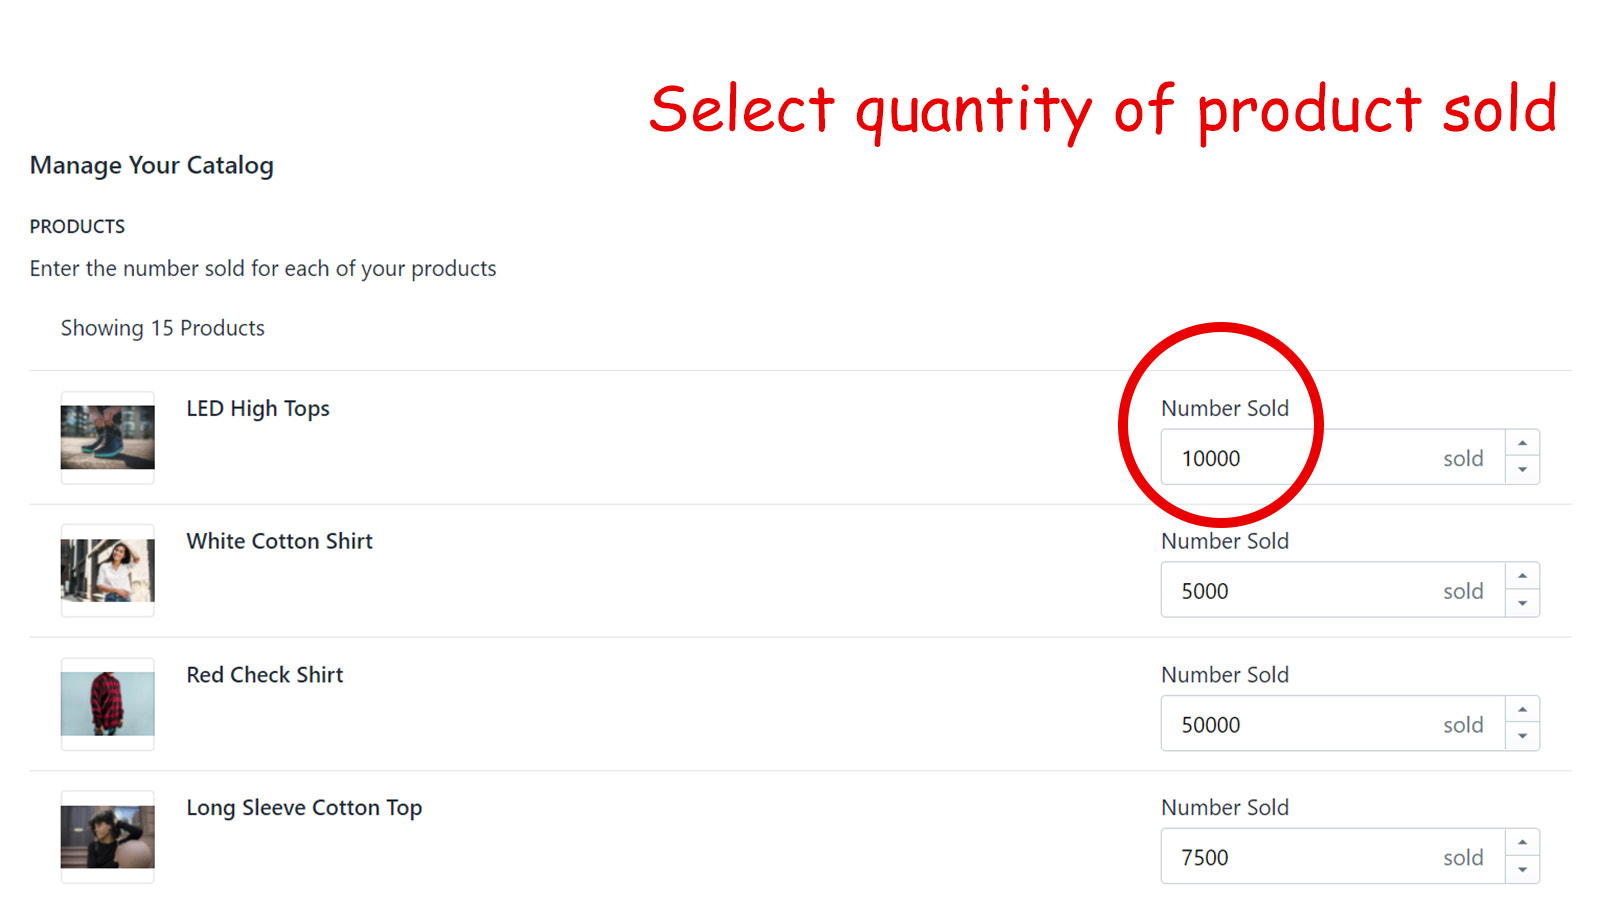 Select quantity of product sold